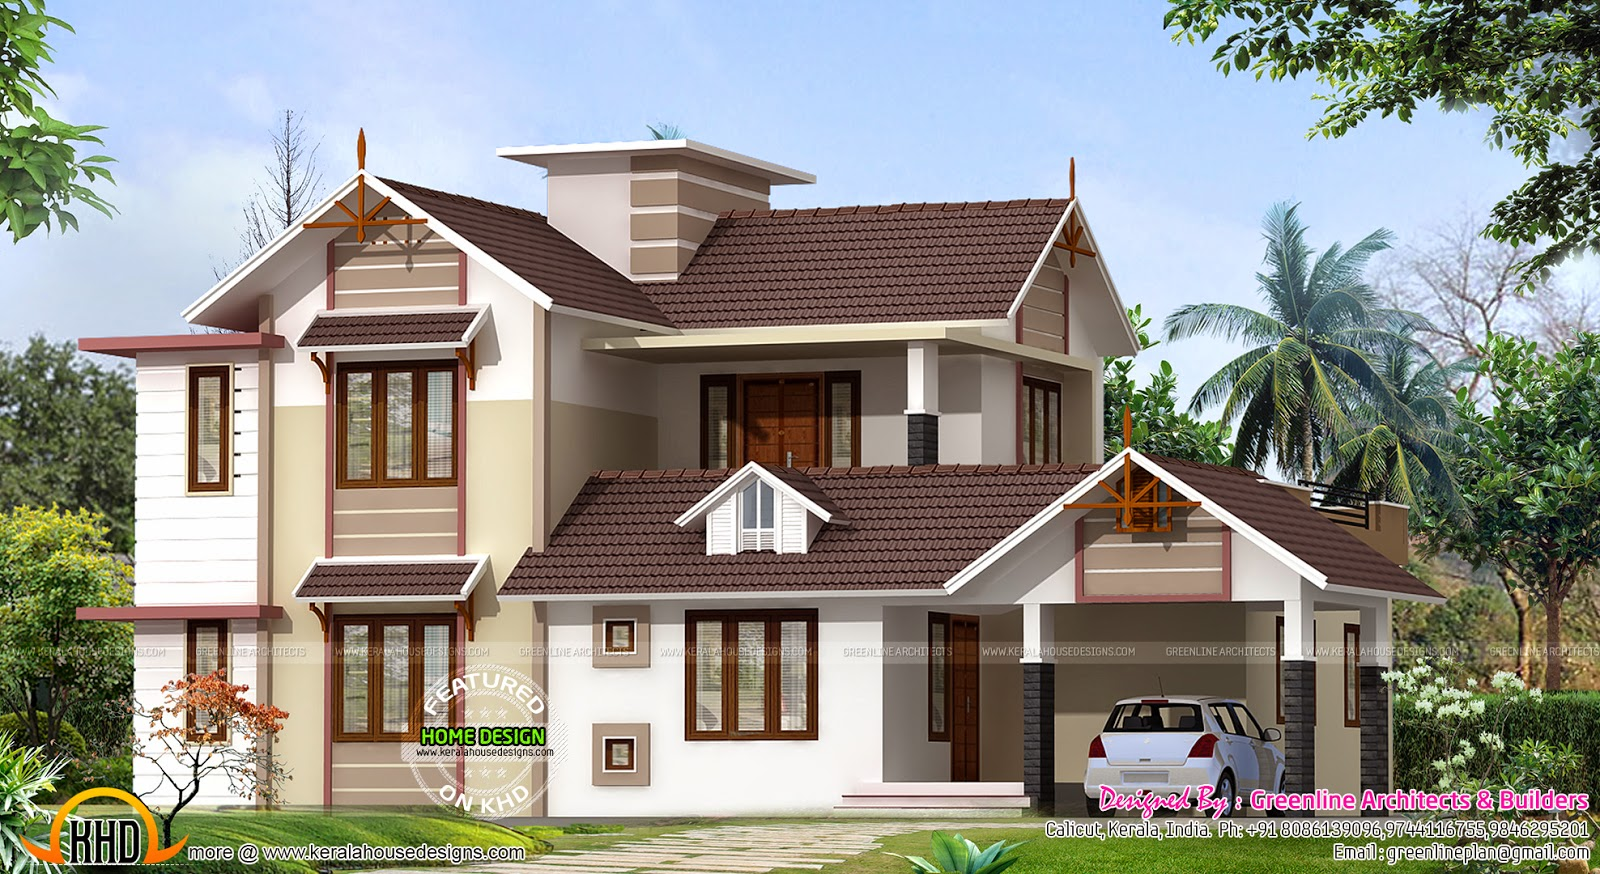 2400 sq ft new house design kerala home design and floor for New home design in kerala